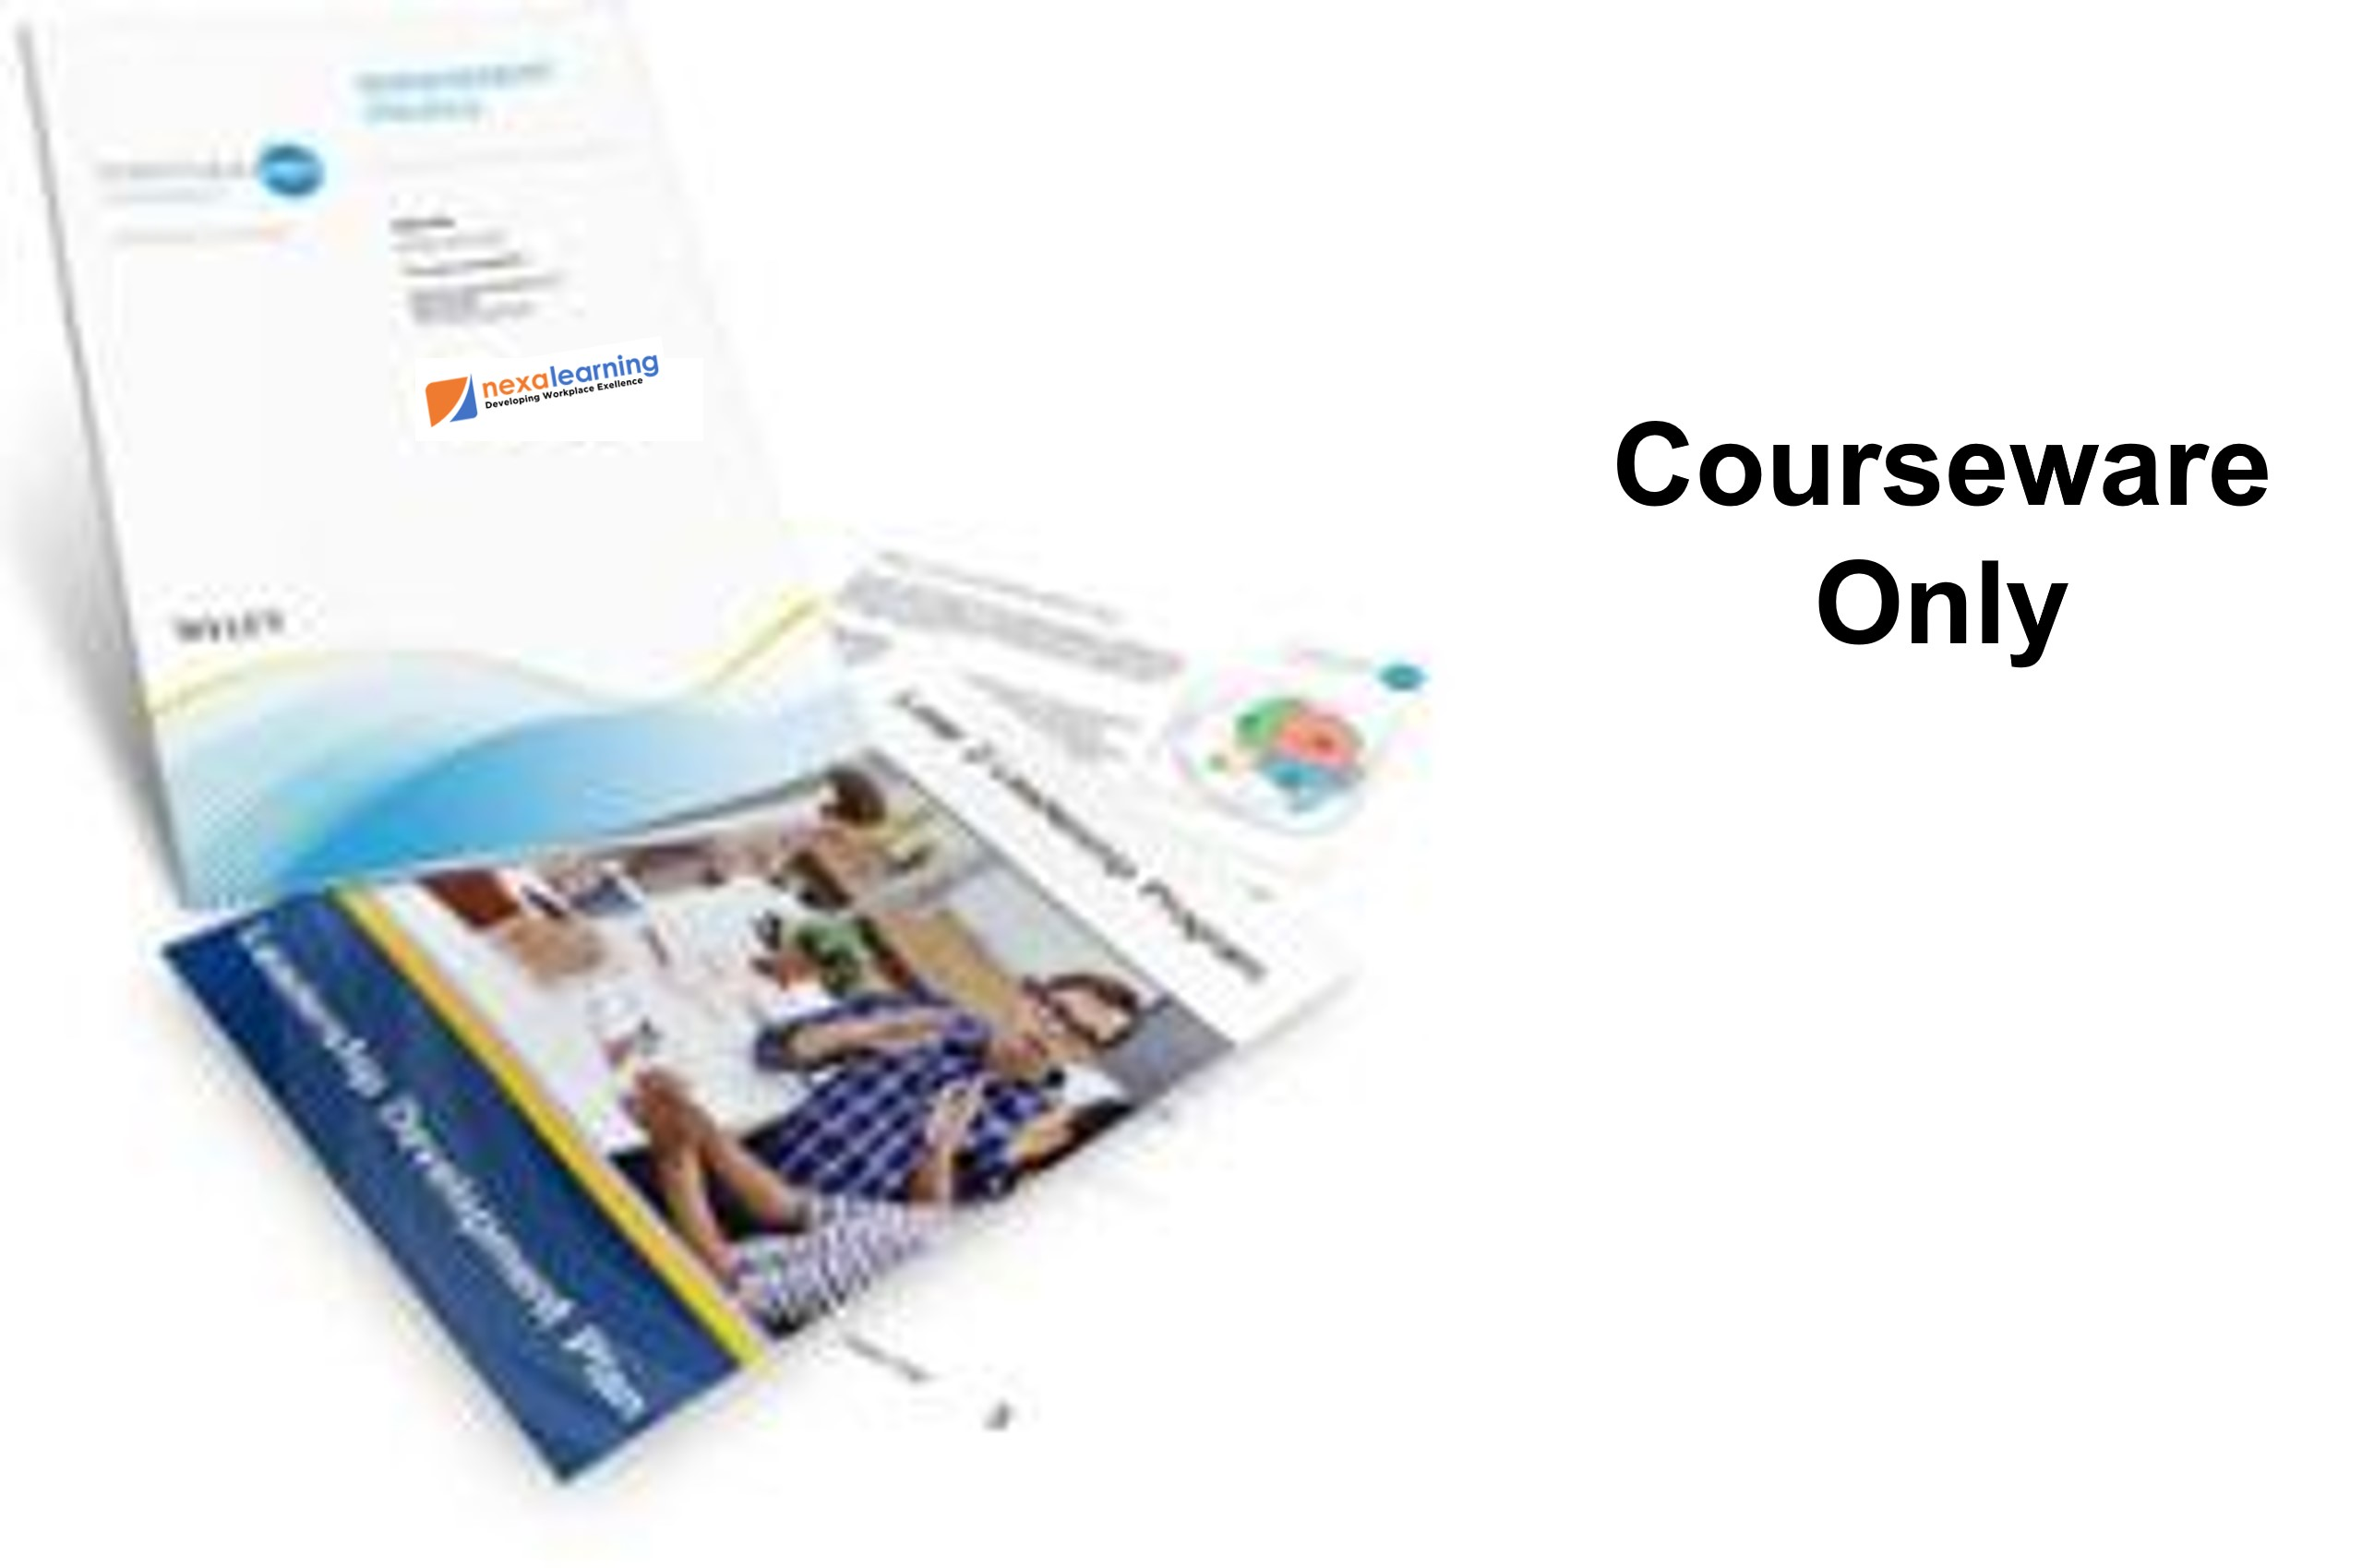 Leap2Leadership - Courseware Only - eLearning - NexaLearning-1.jpg